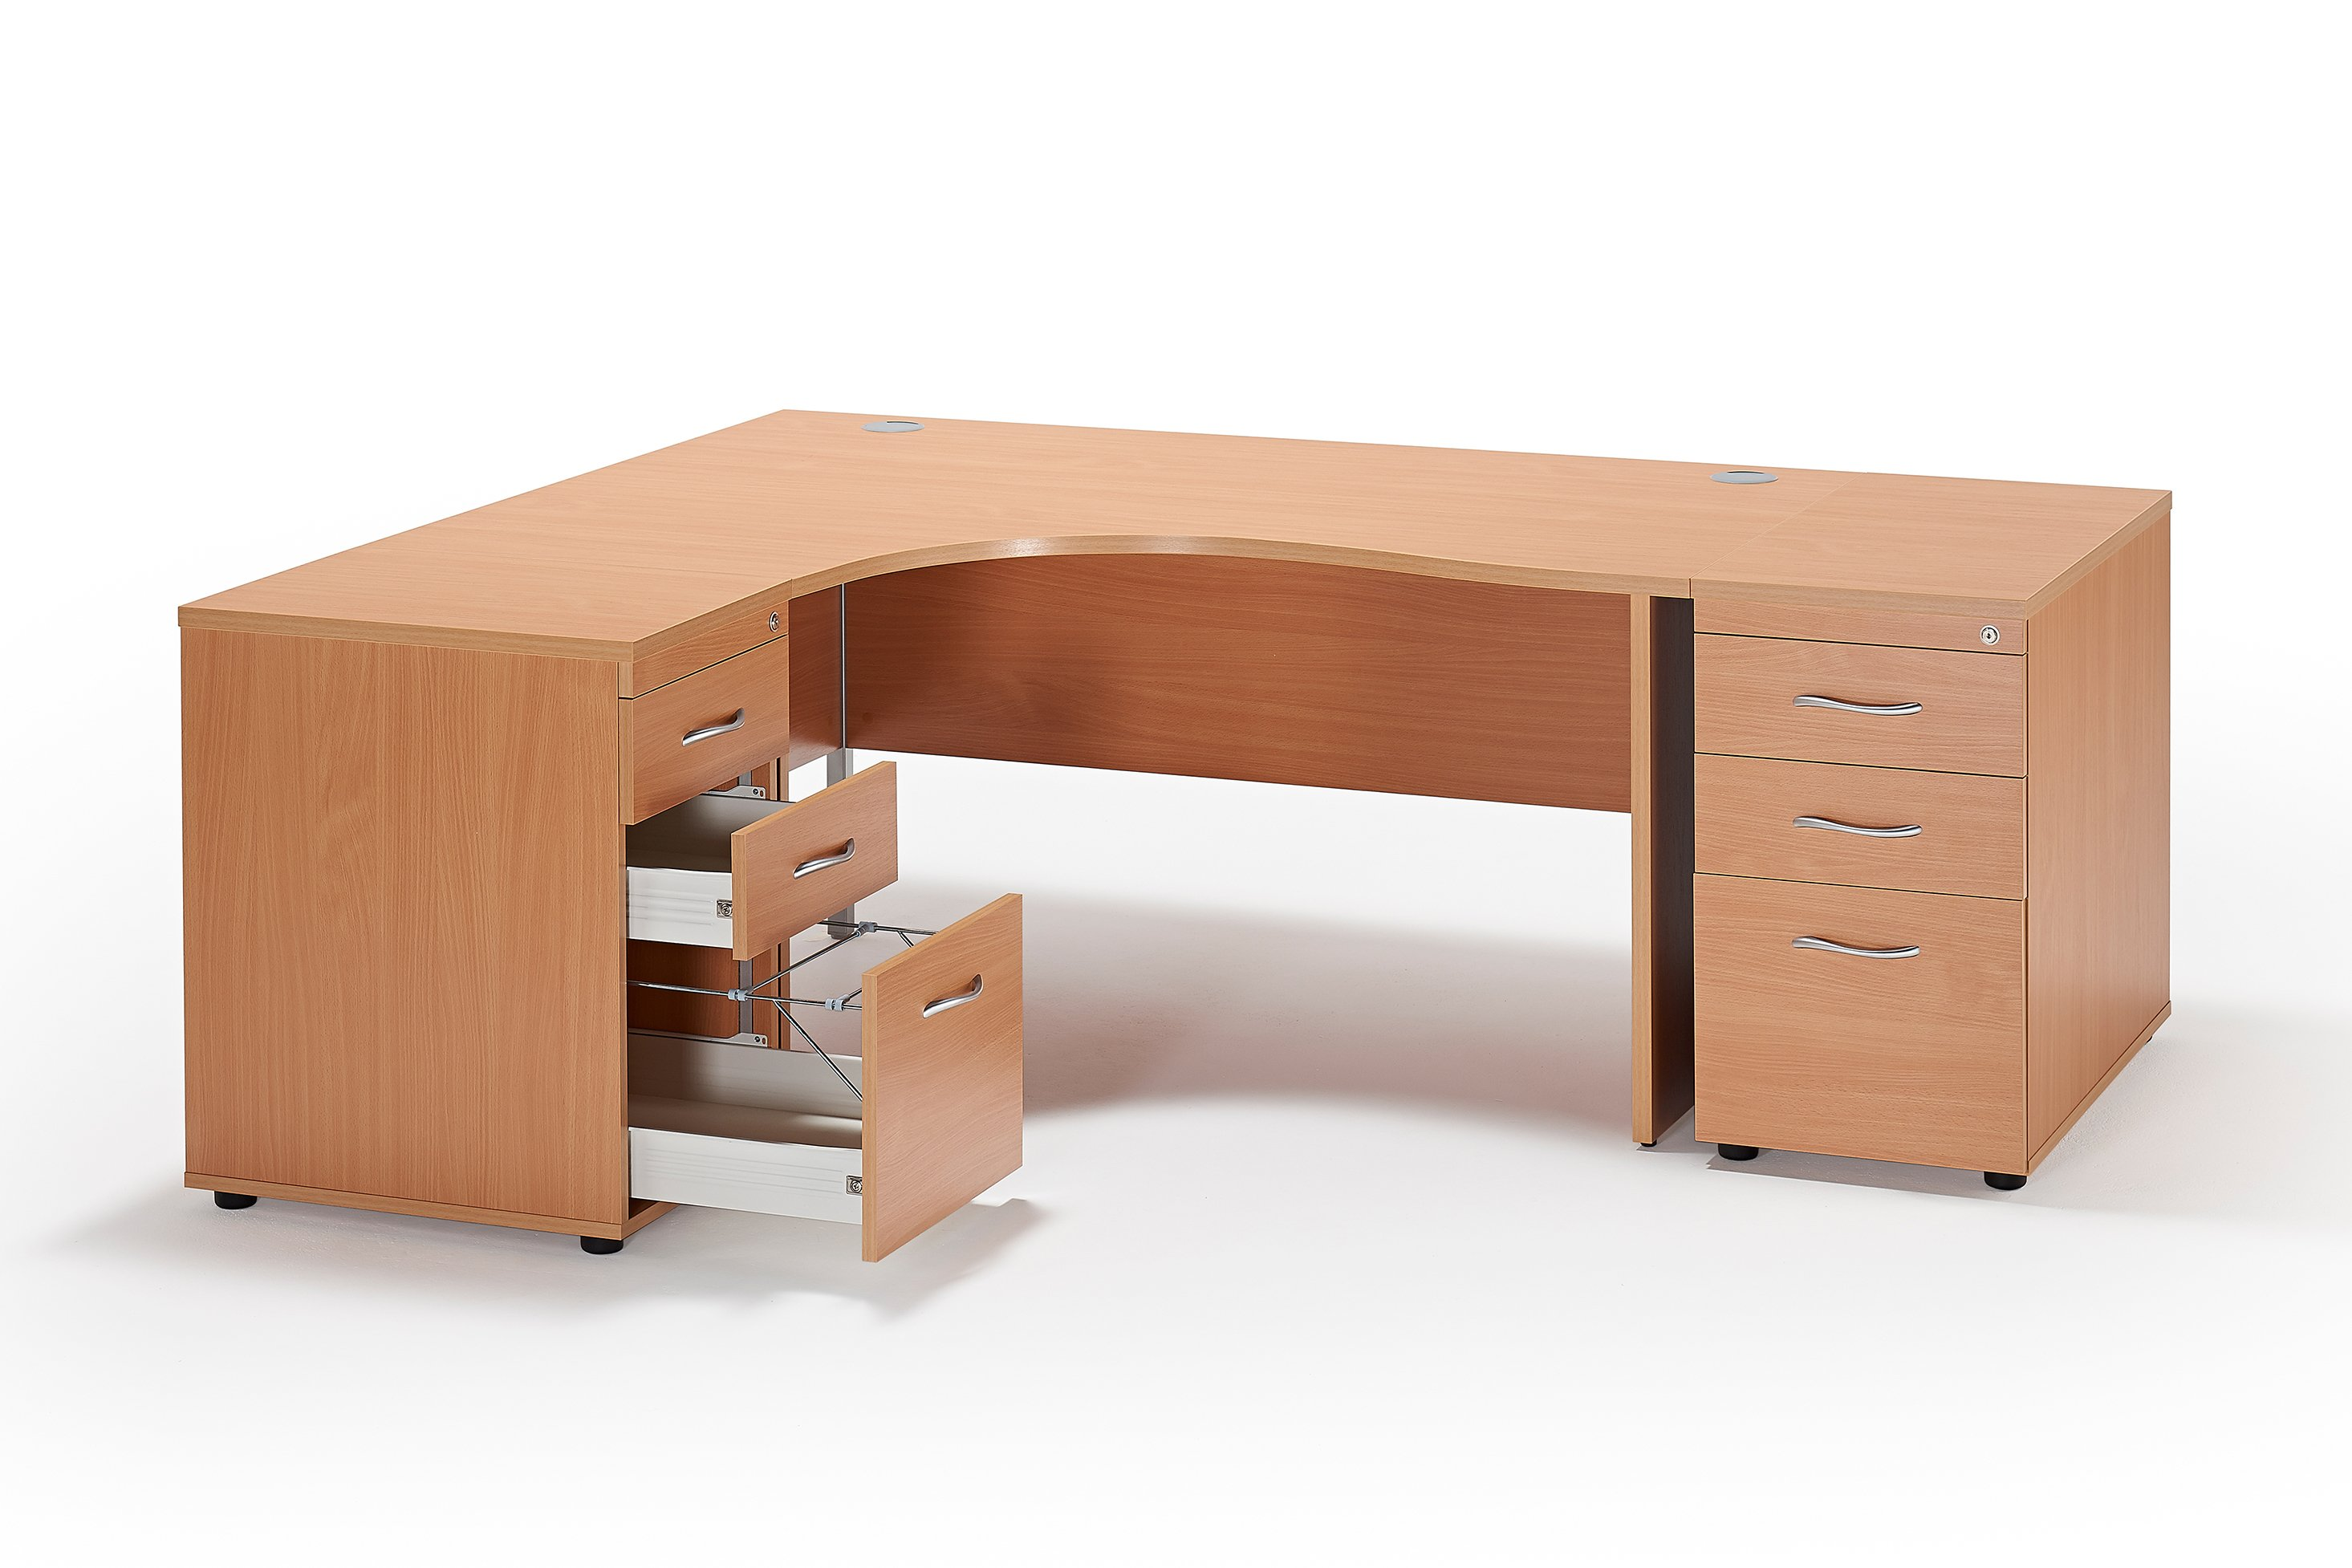 next day curved beech panel leg office desk and 2 desk high pedestals